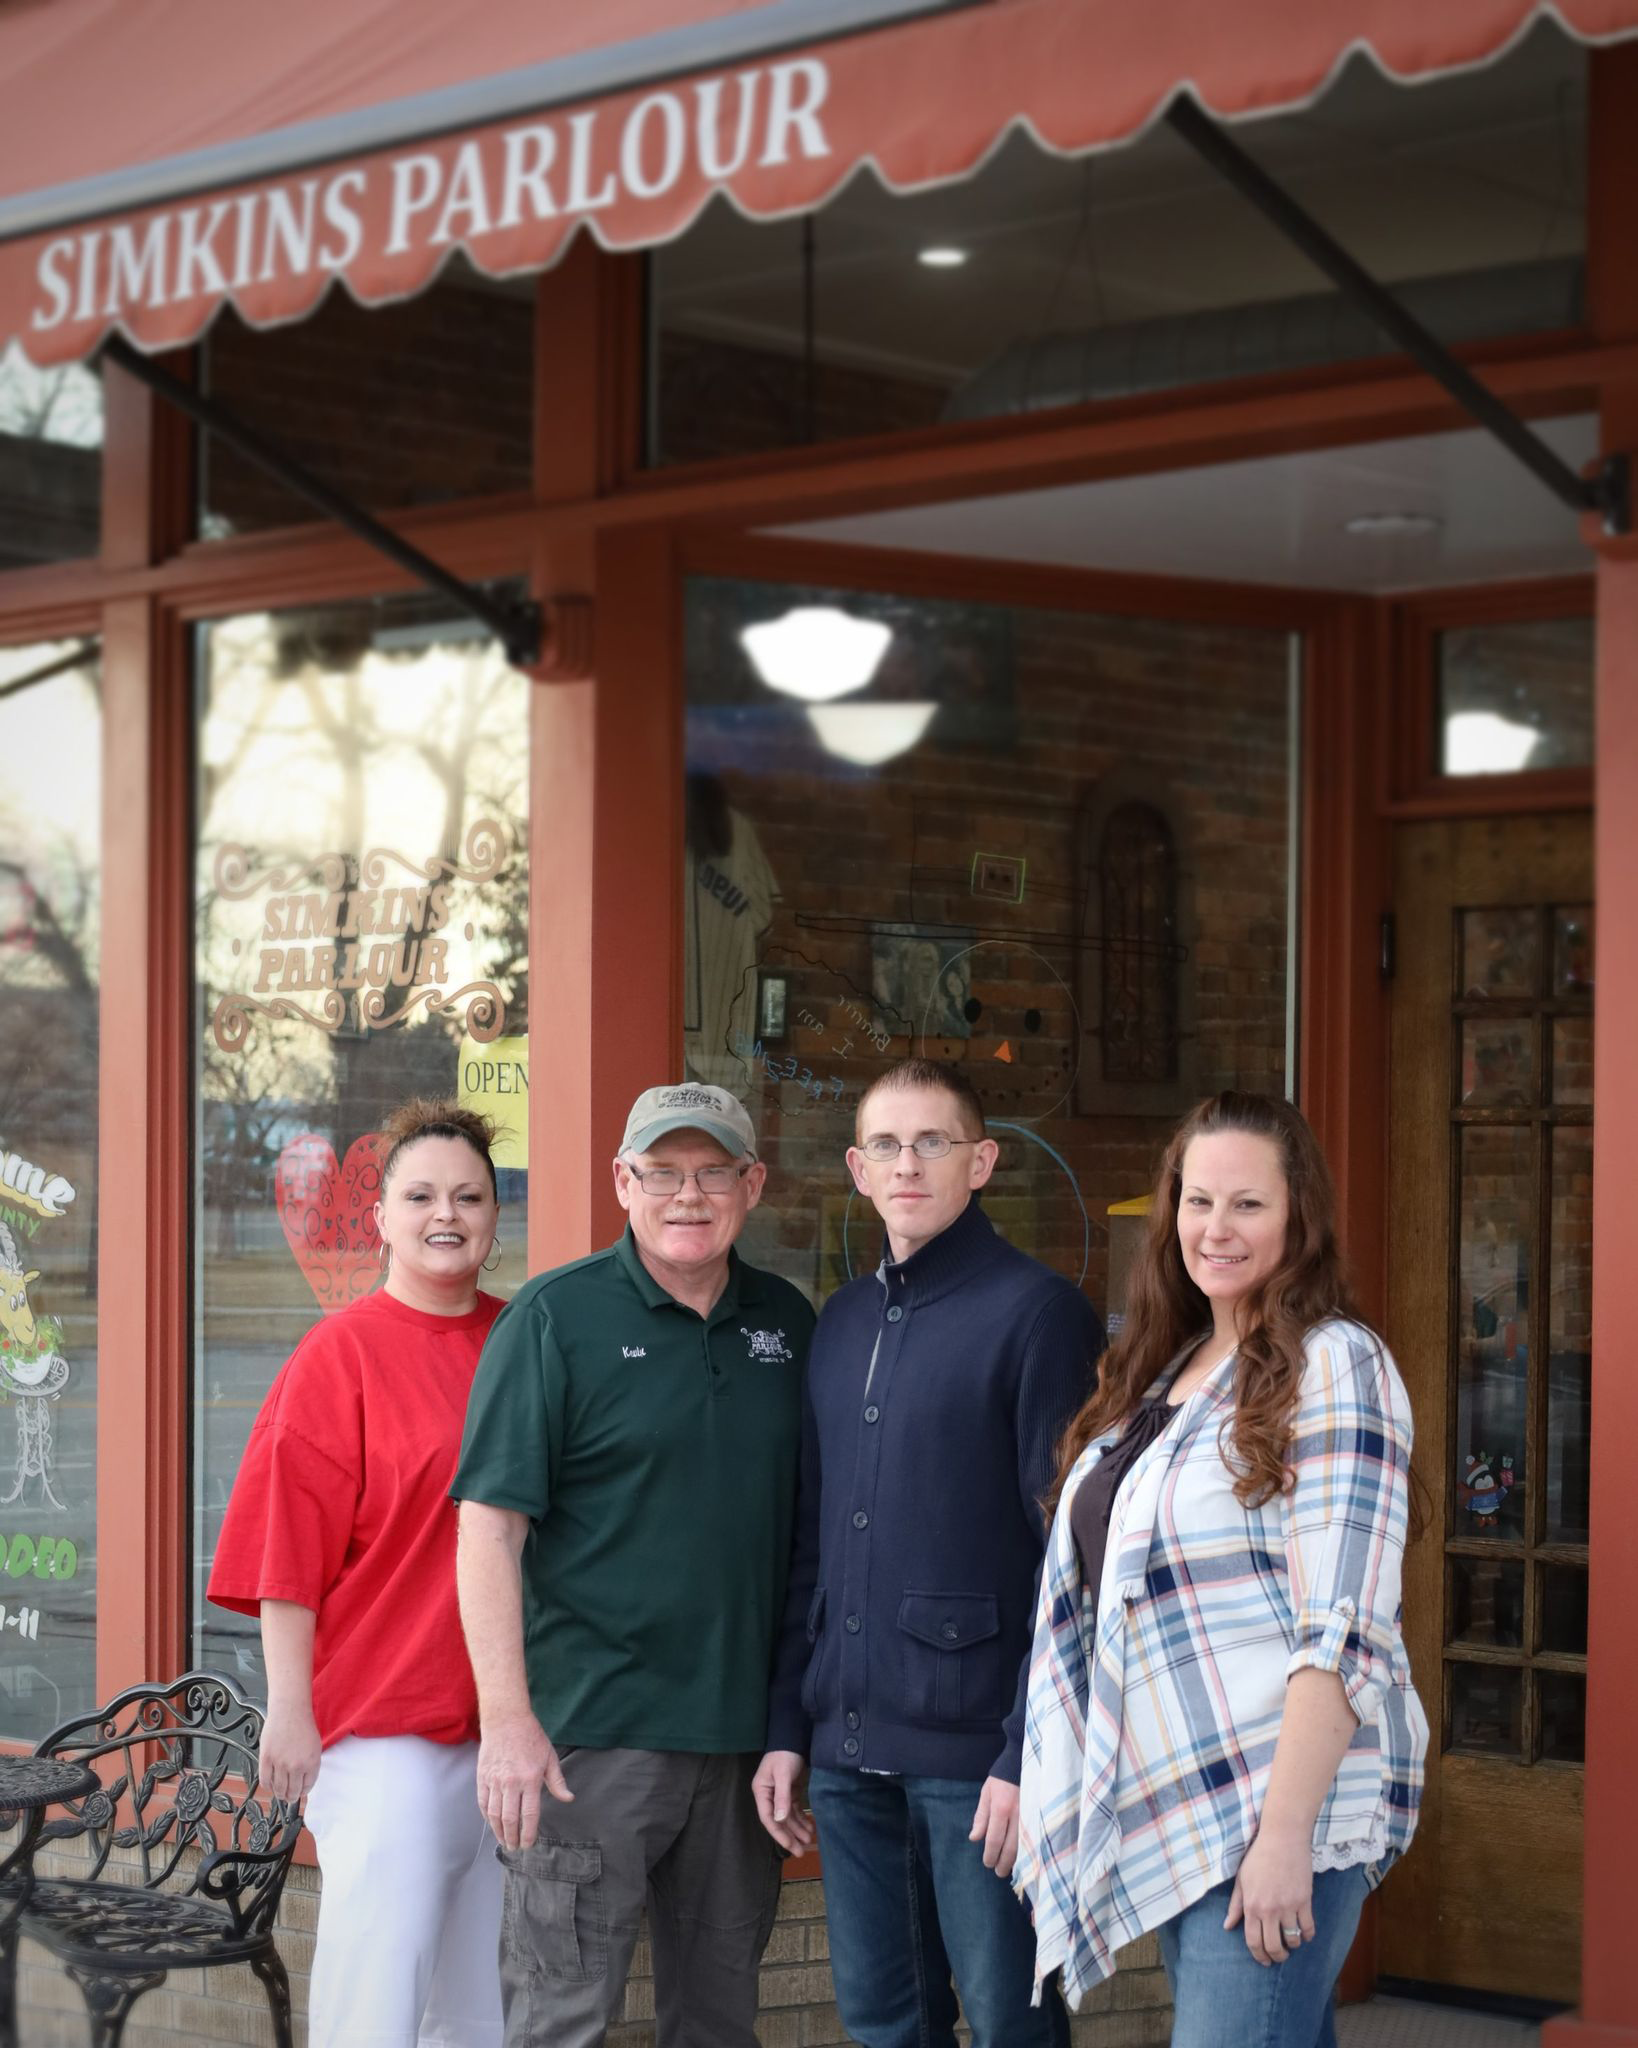 Simkins Parlour Owners